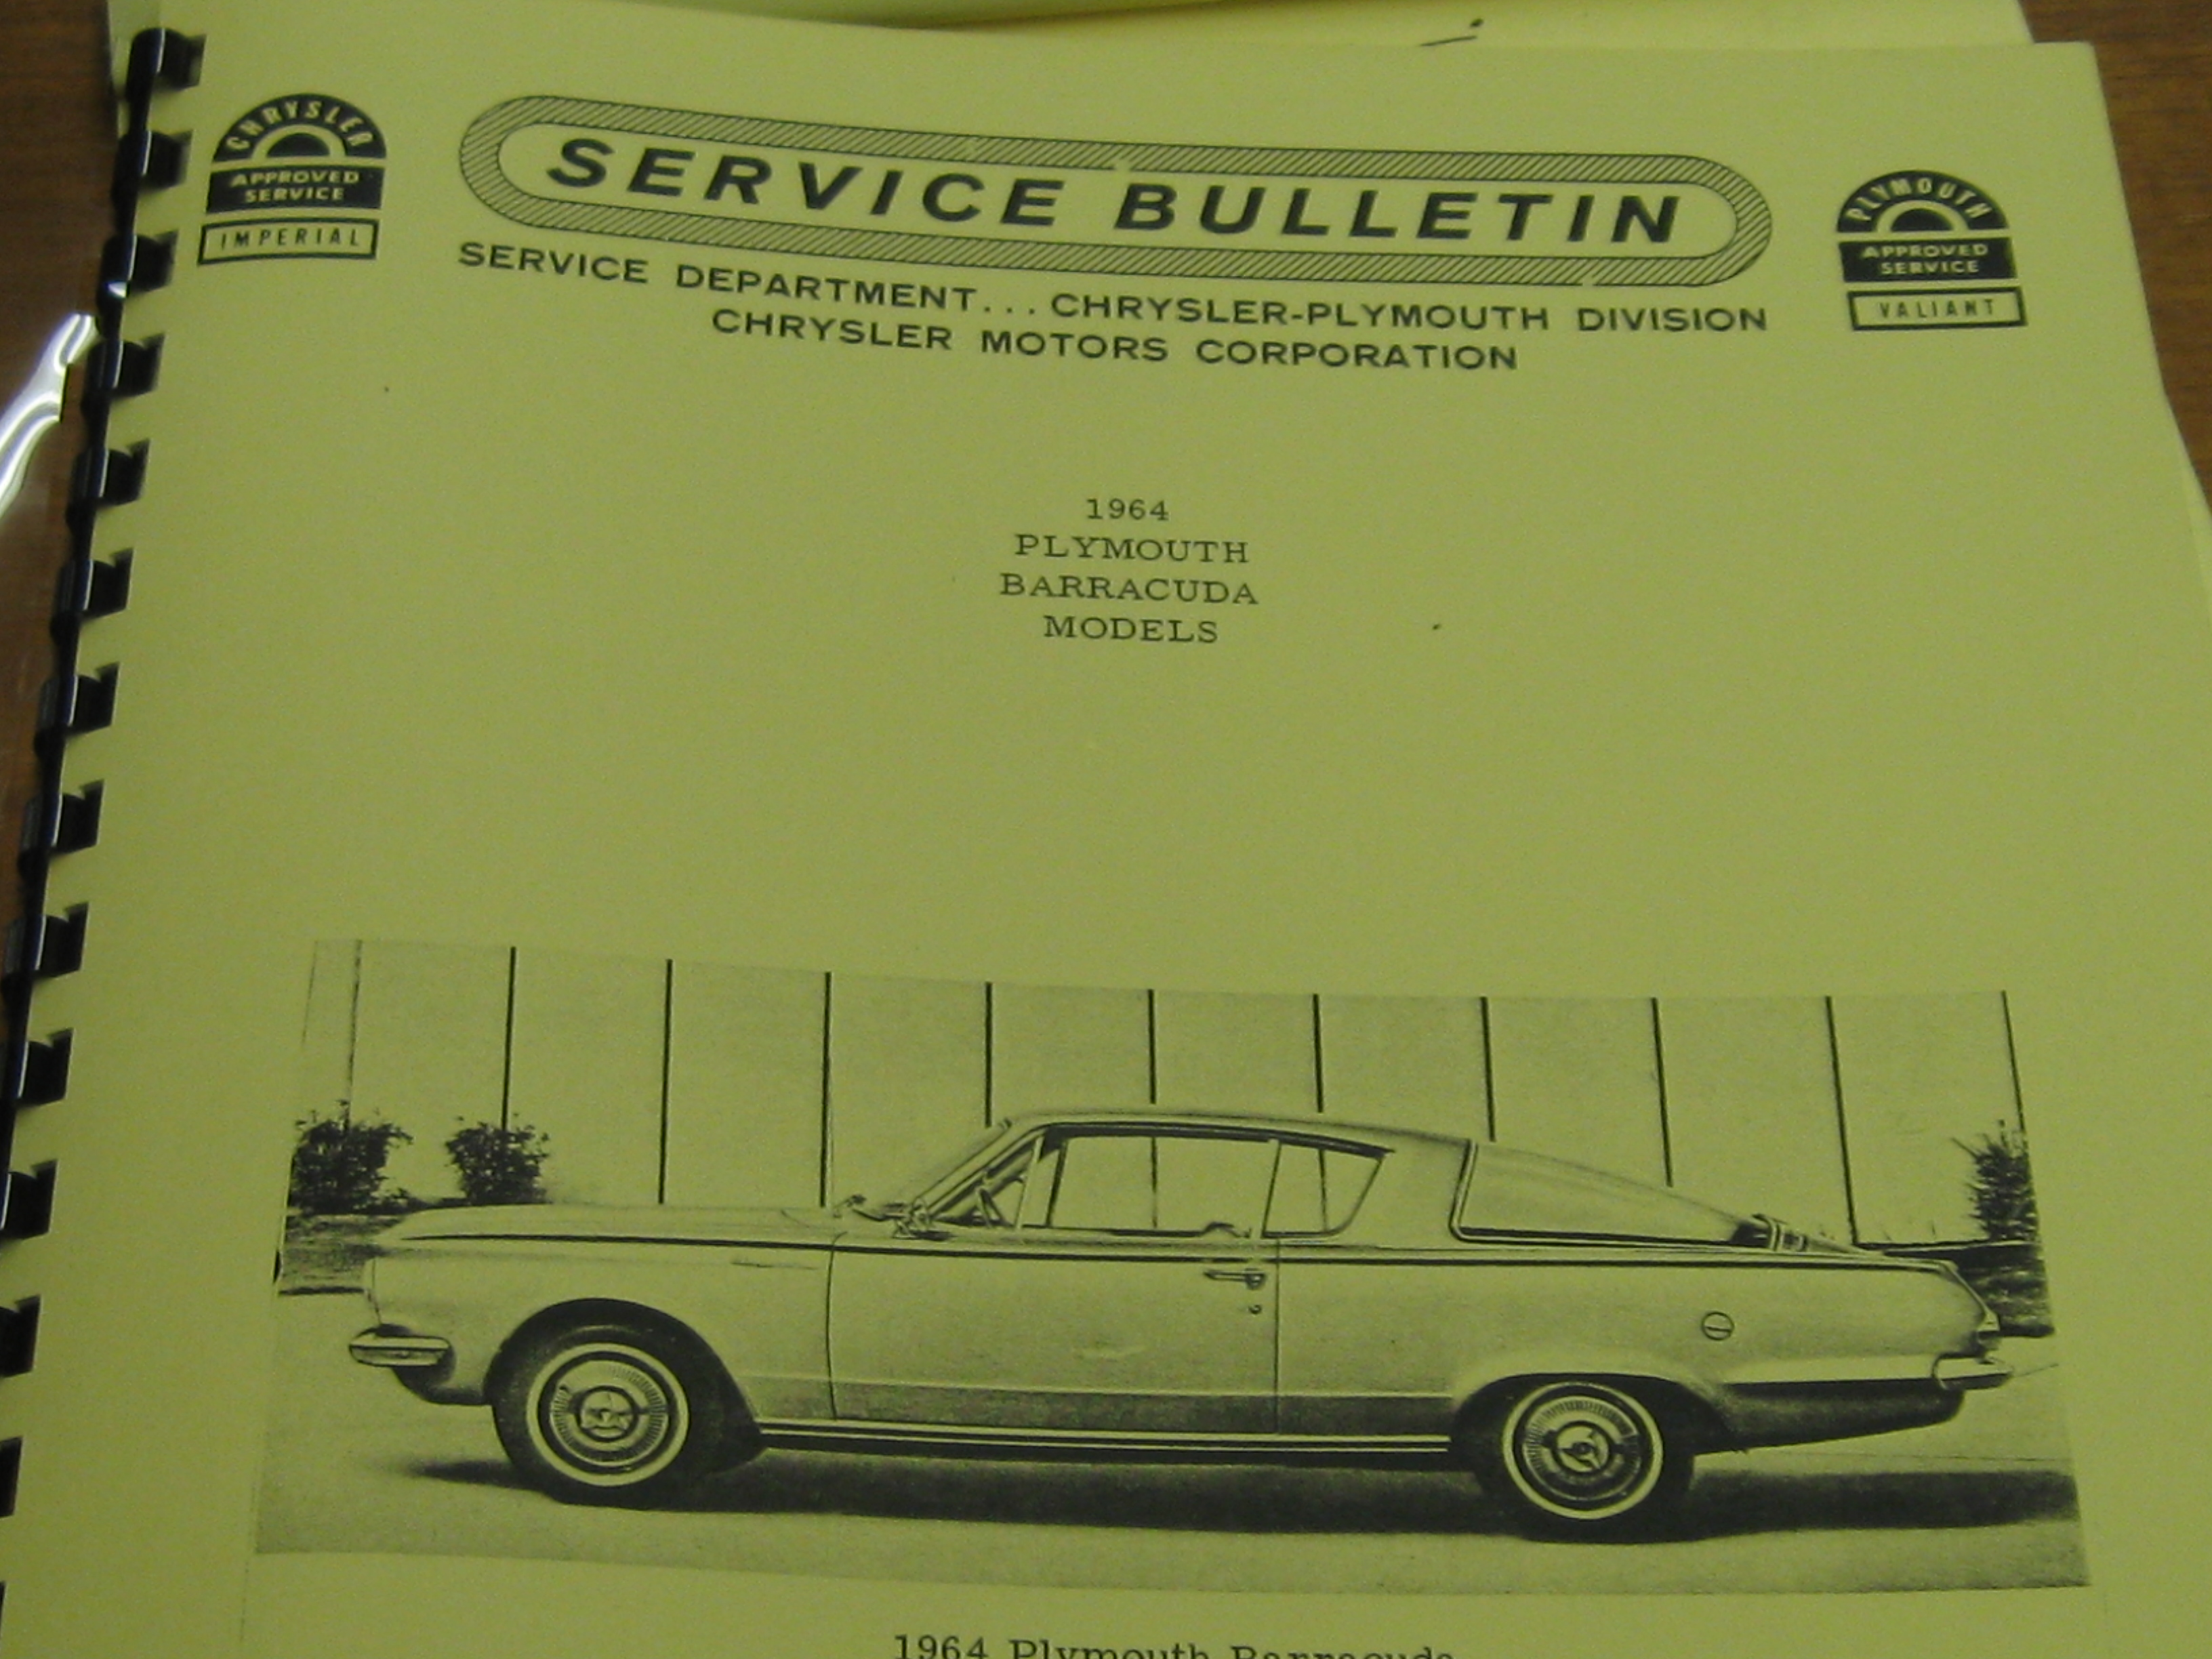 $10.00 Tax may apply. 74 in stock. Quantity. Add to cart. SKU: 1964  Plymouth Barracuda Service Buletin